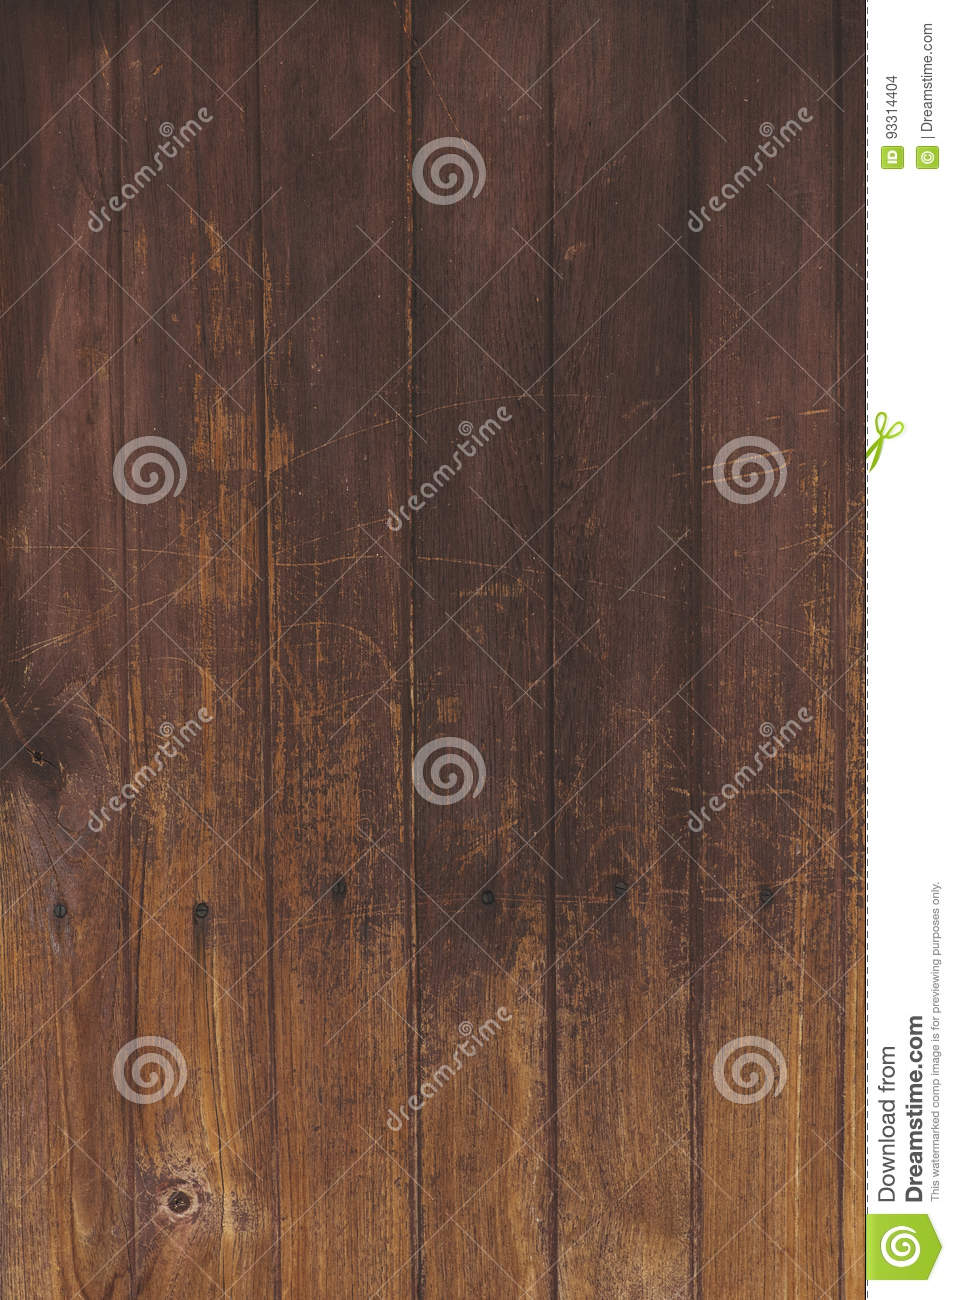 Brown natural wood wall texture and background seamless